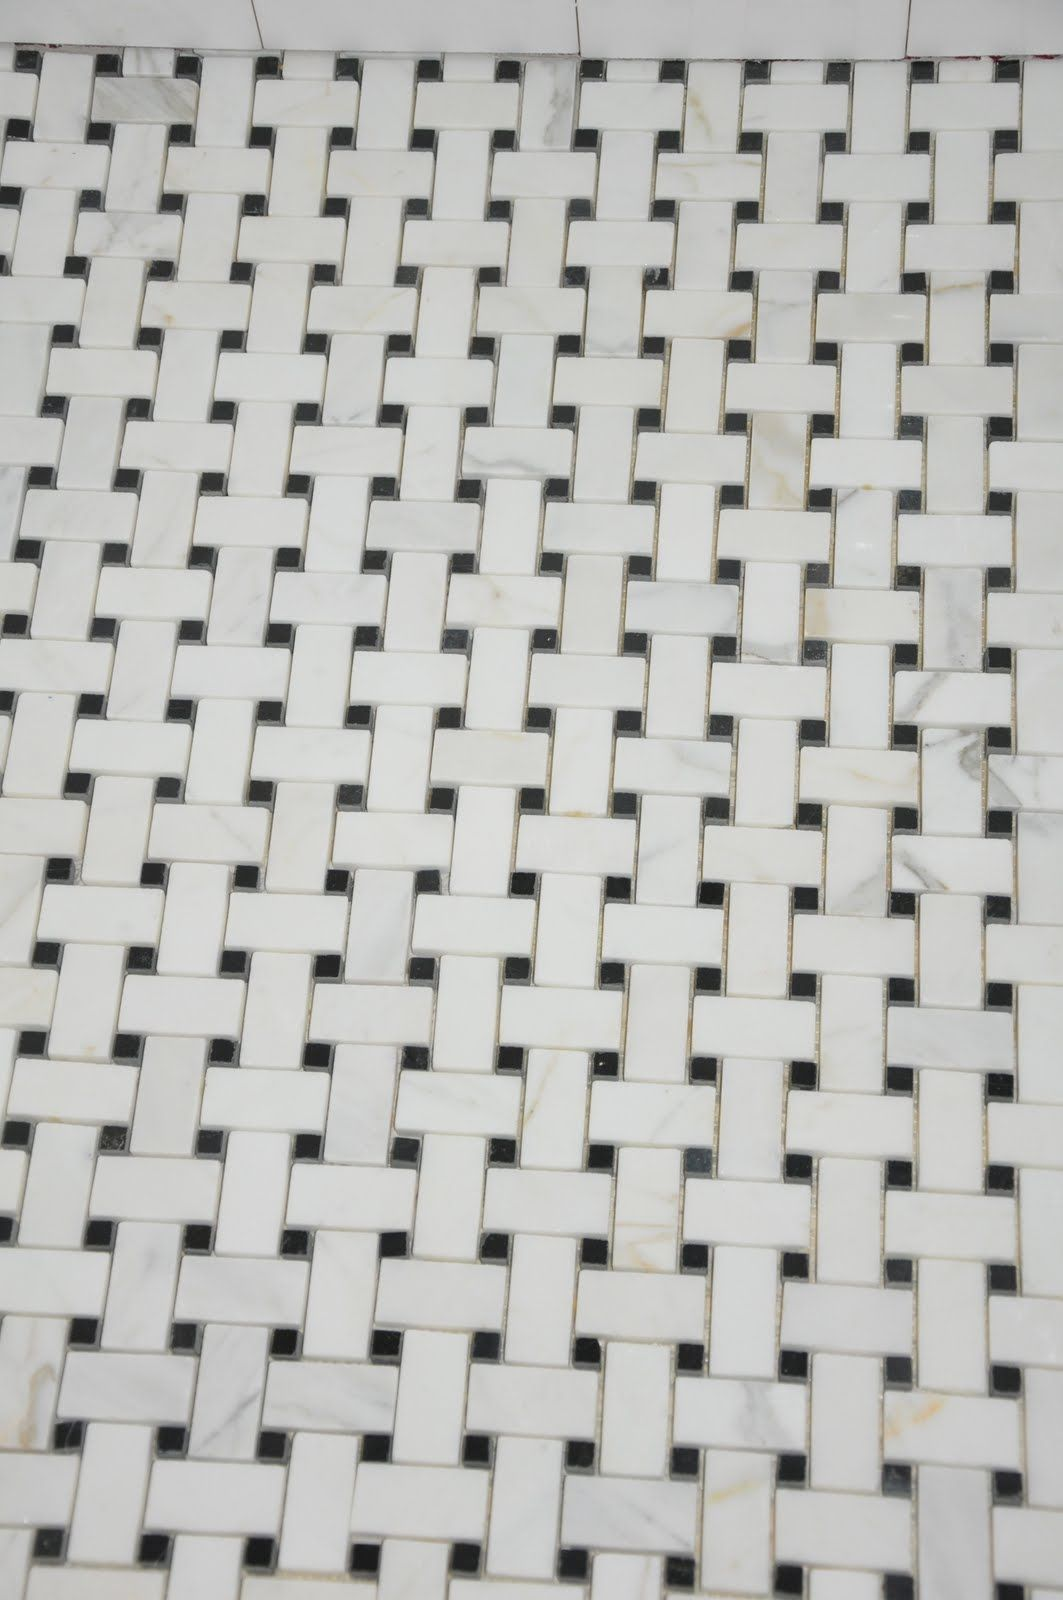 Image Result For Marble Basketweave Tile With Gray Grout Basket Weave Tile Grey Grout Tiles